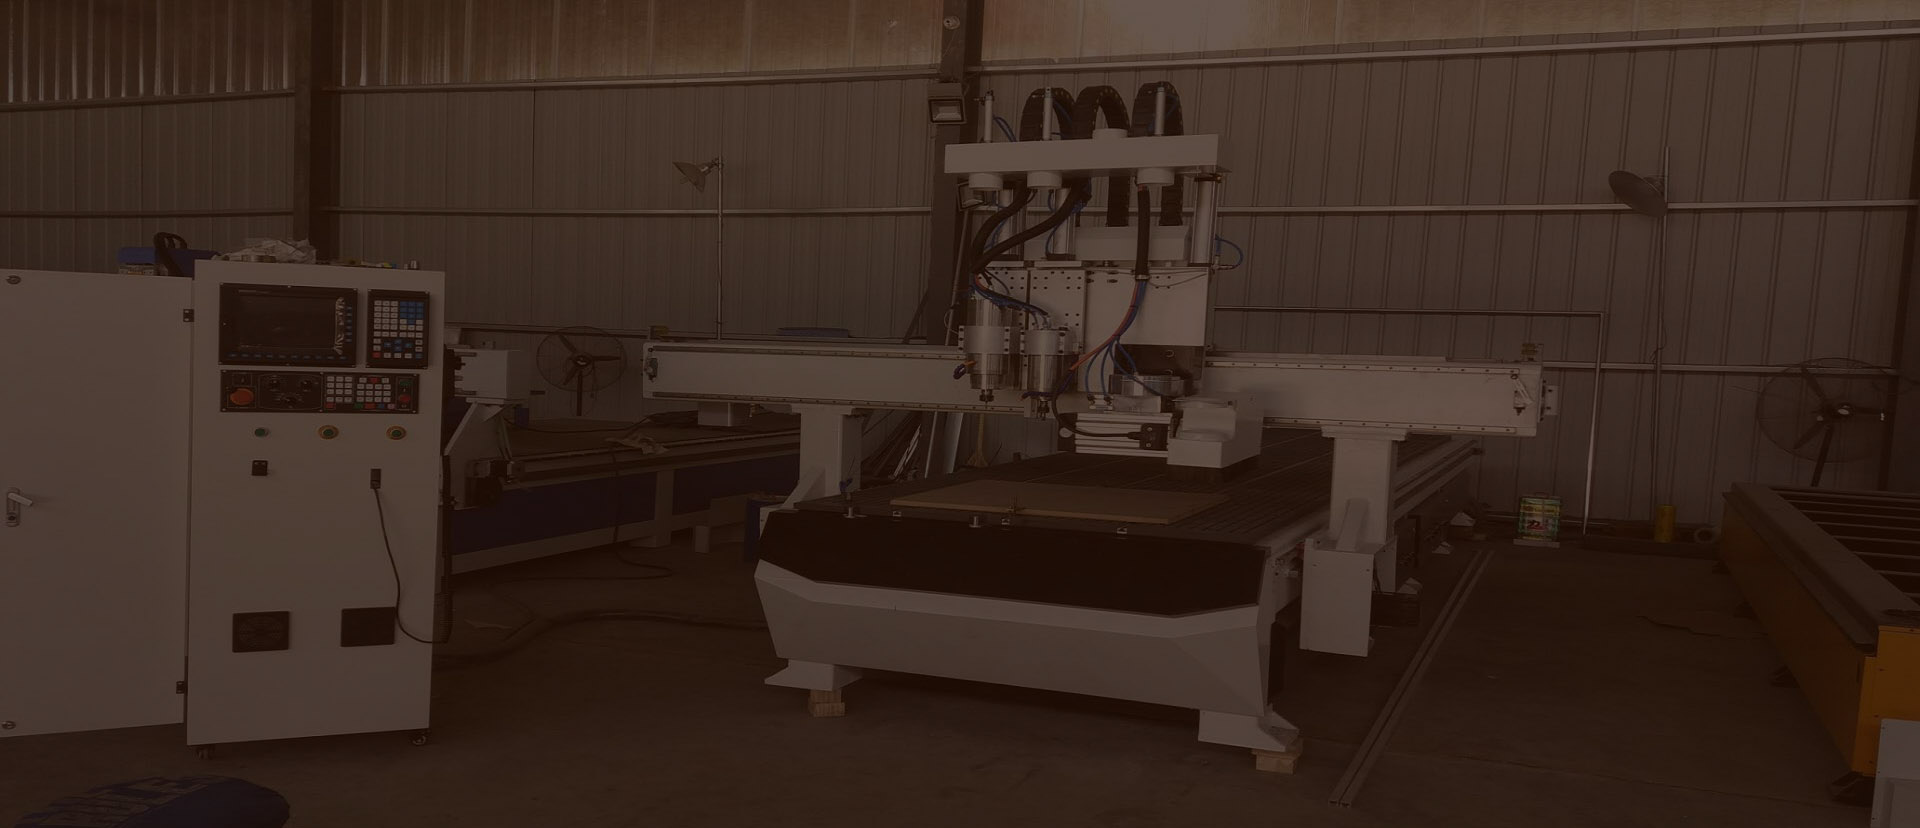 CNC Router products | 3D Scanning Machines in Bangalore